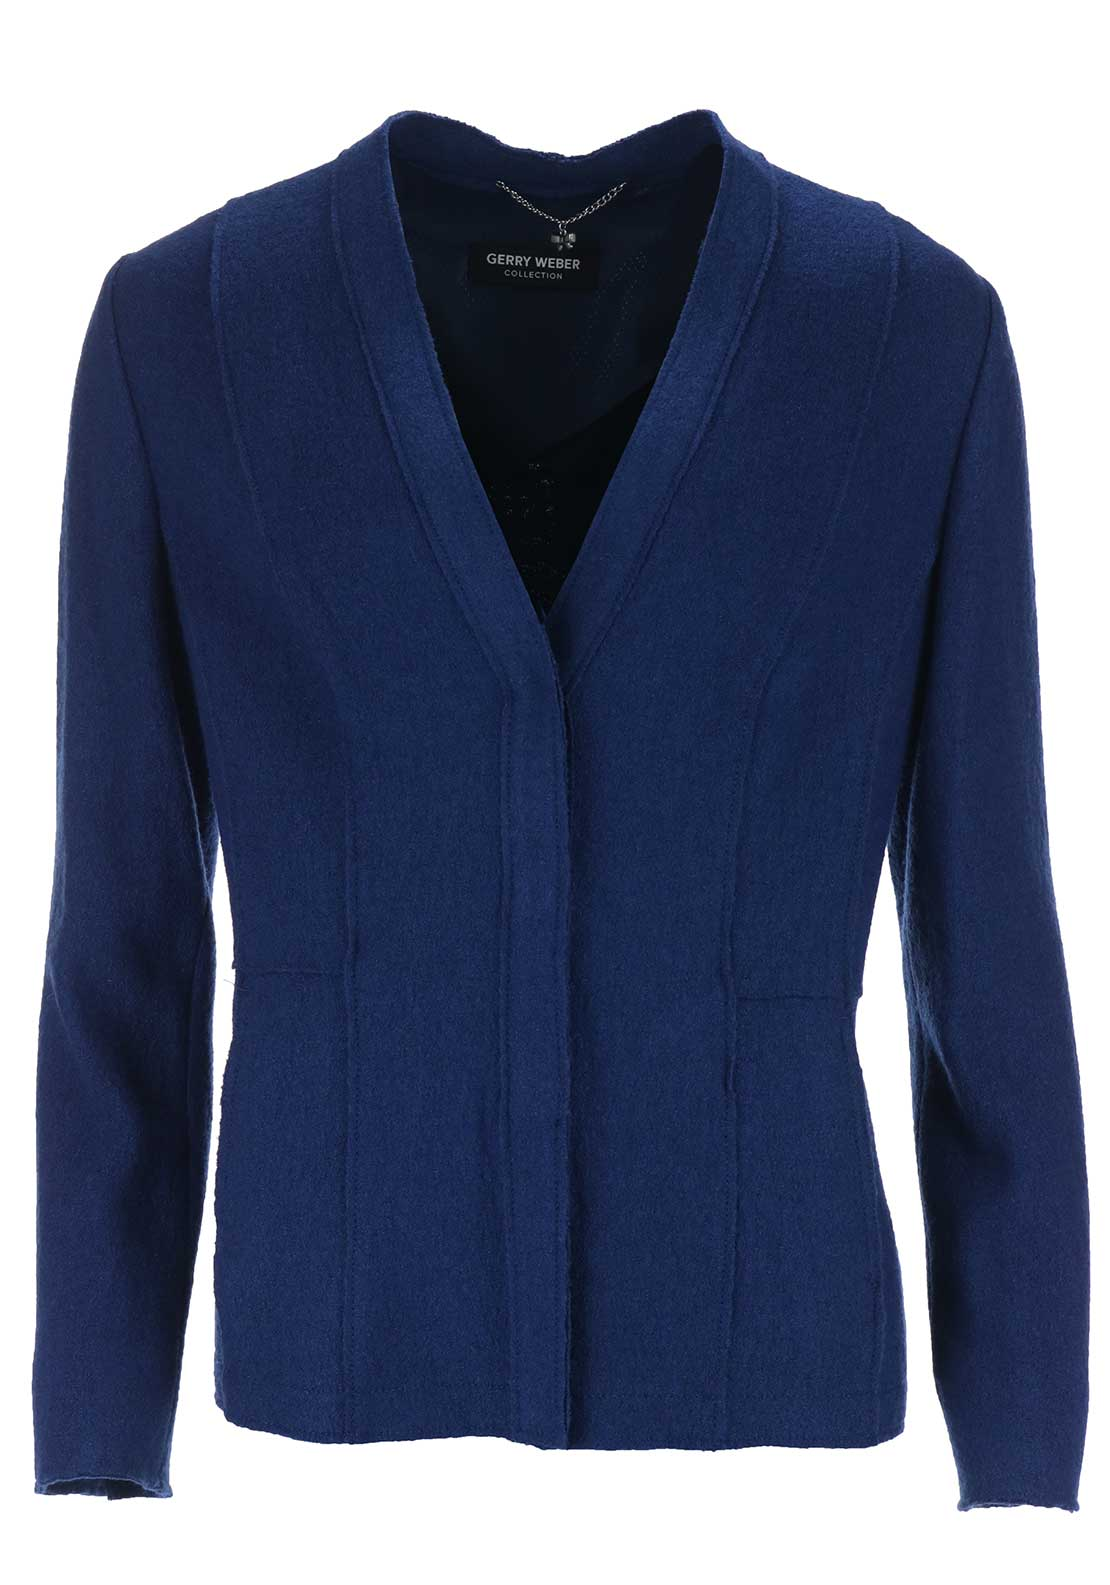 Gerry Weber Wool Blend Jacket, Blue